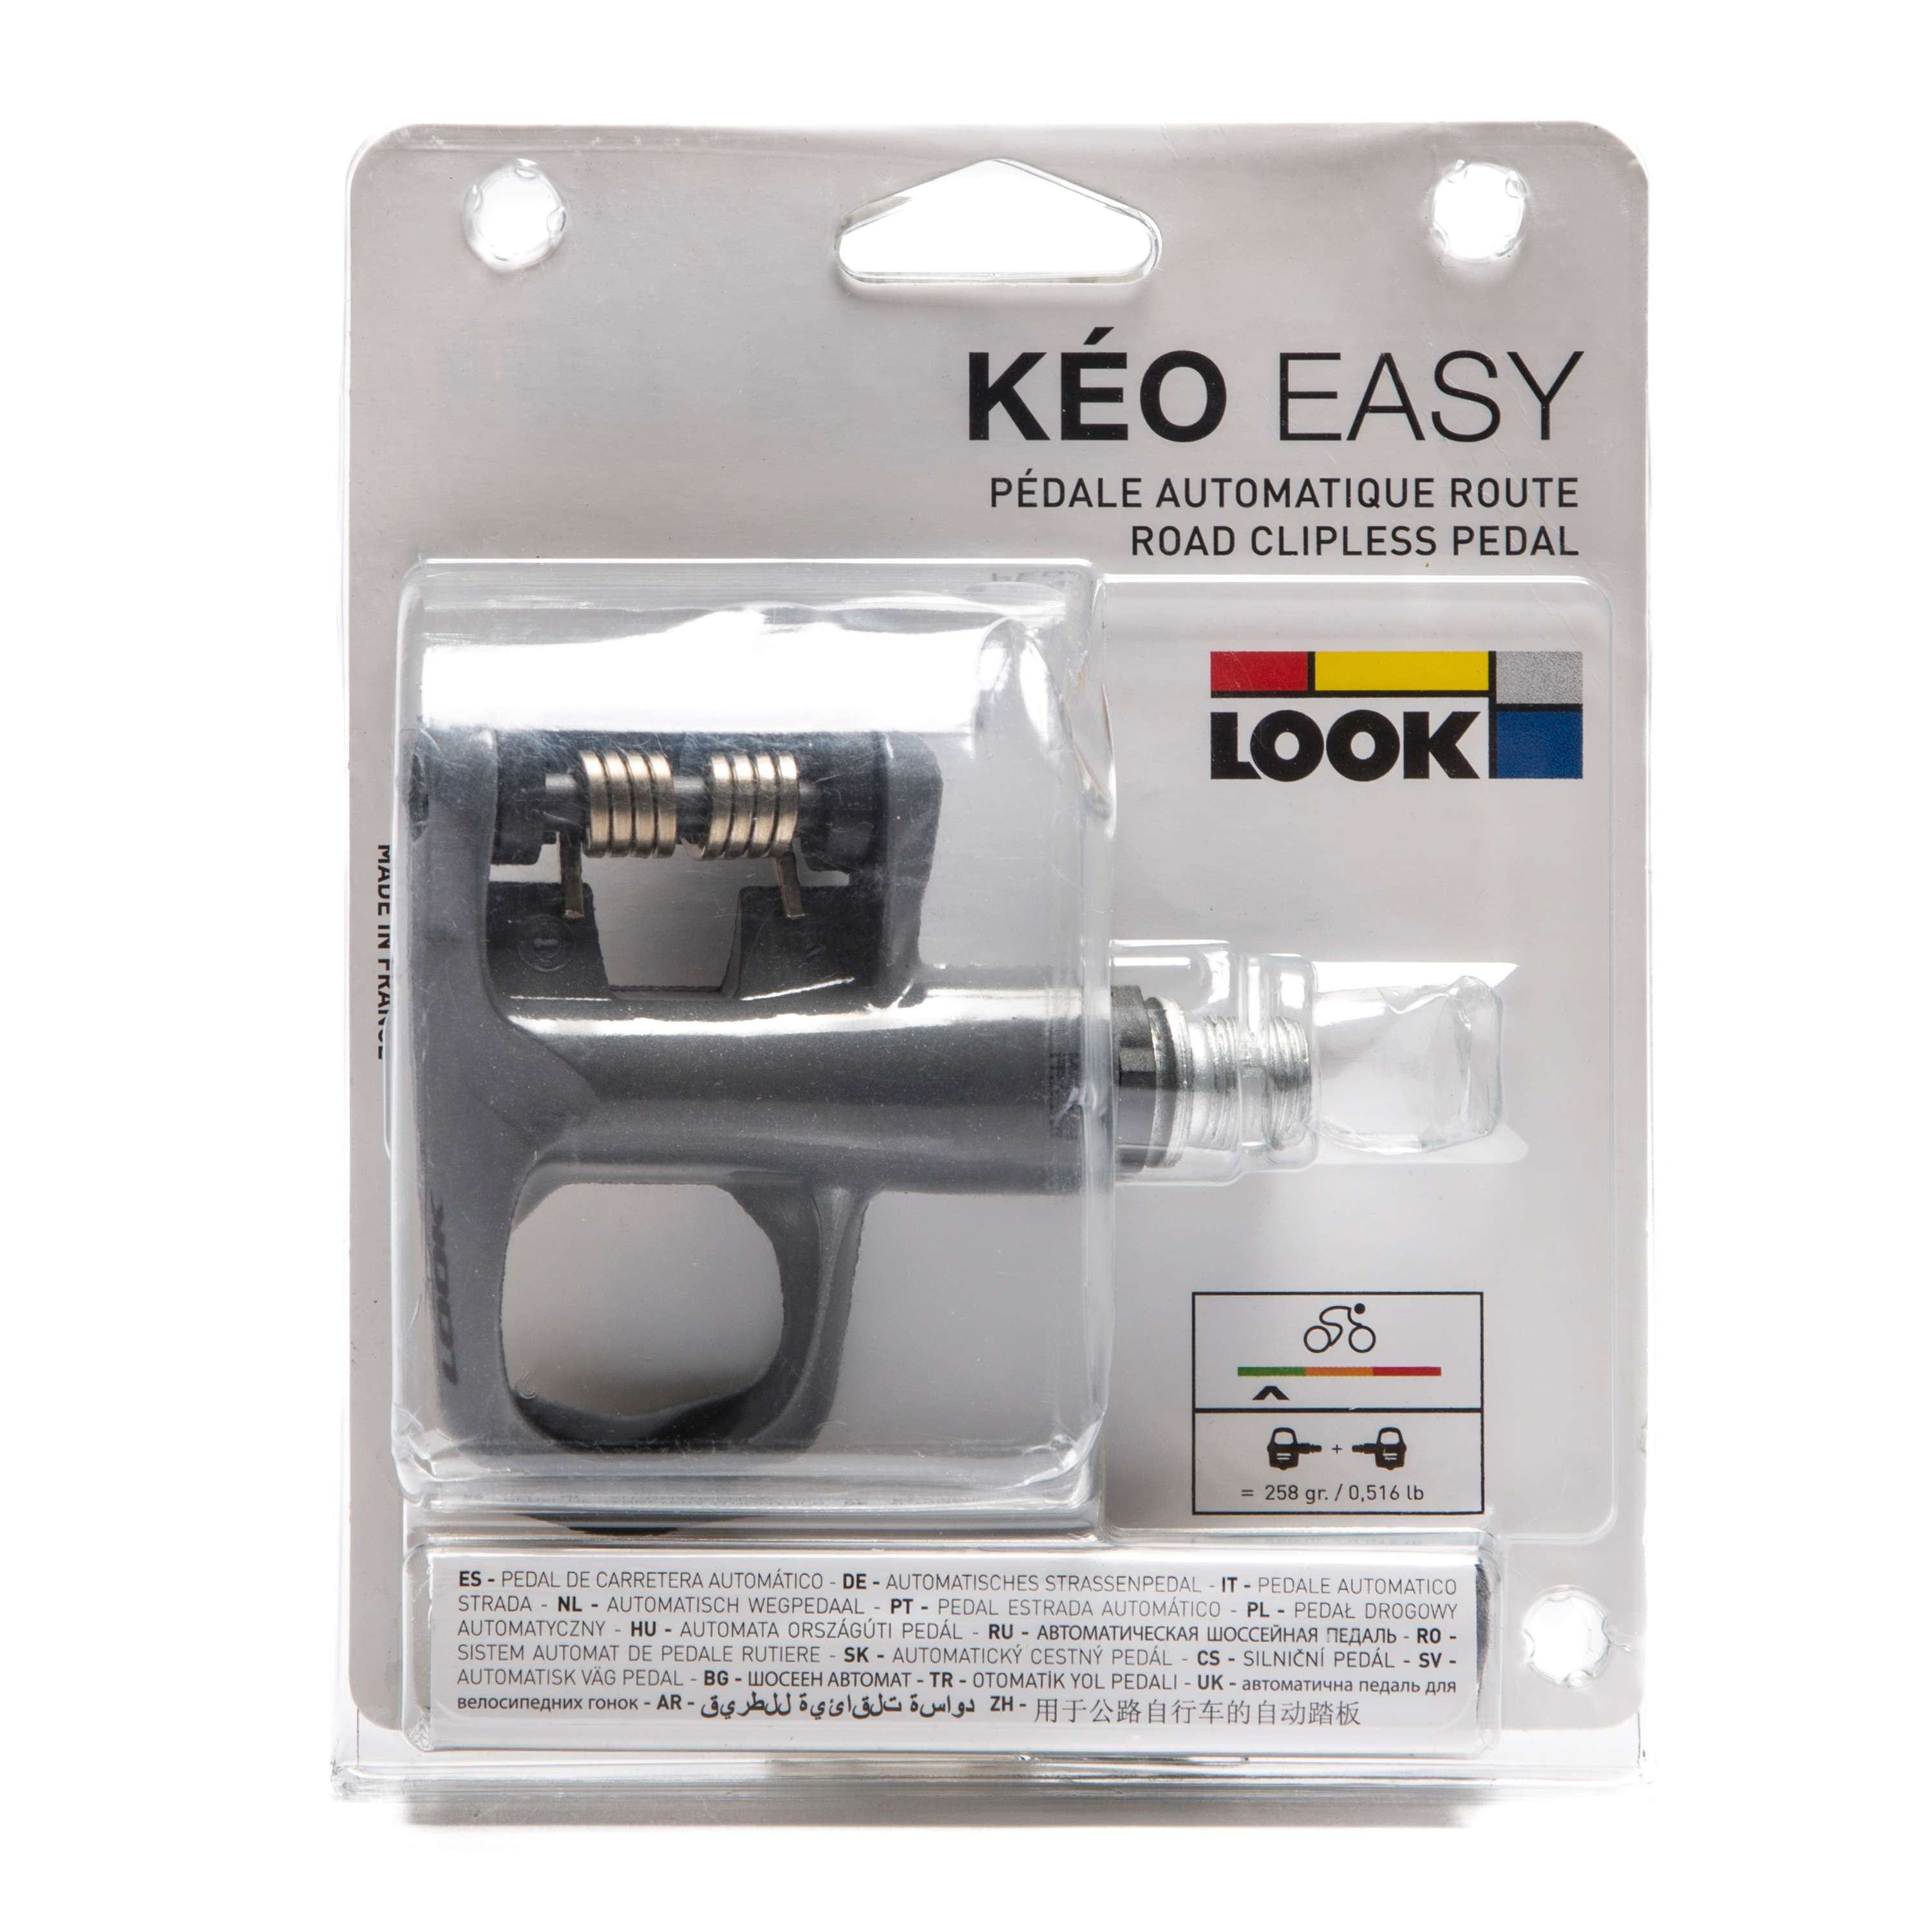 LOOK Keo Easy Pedal